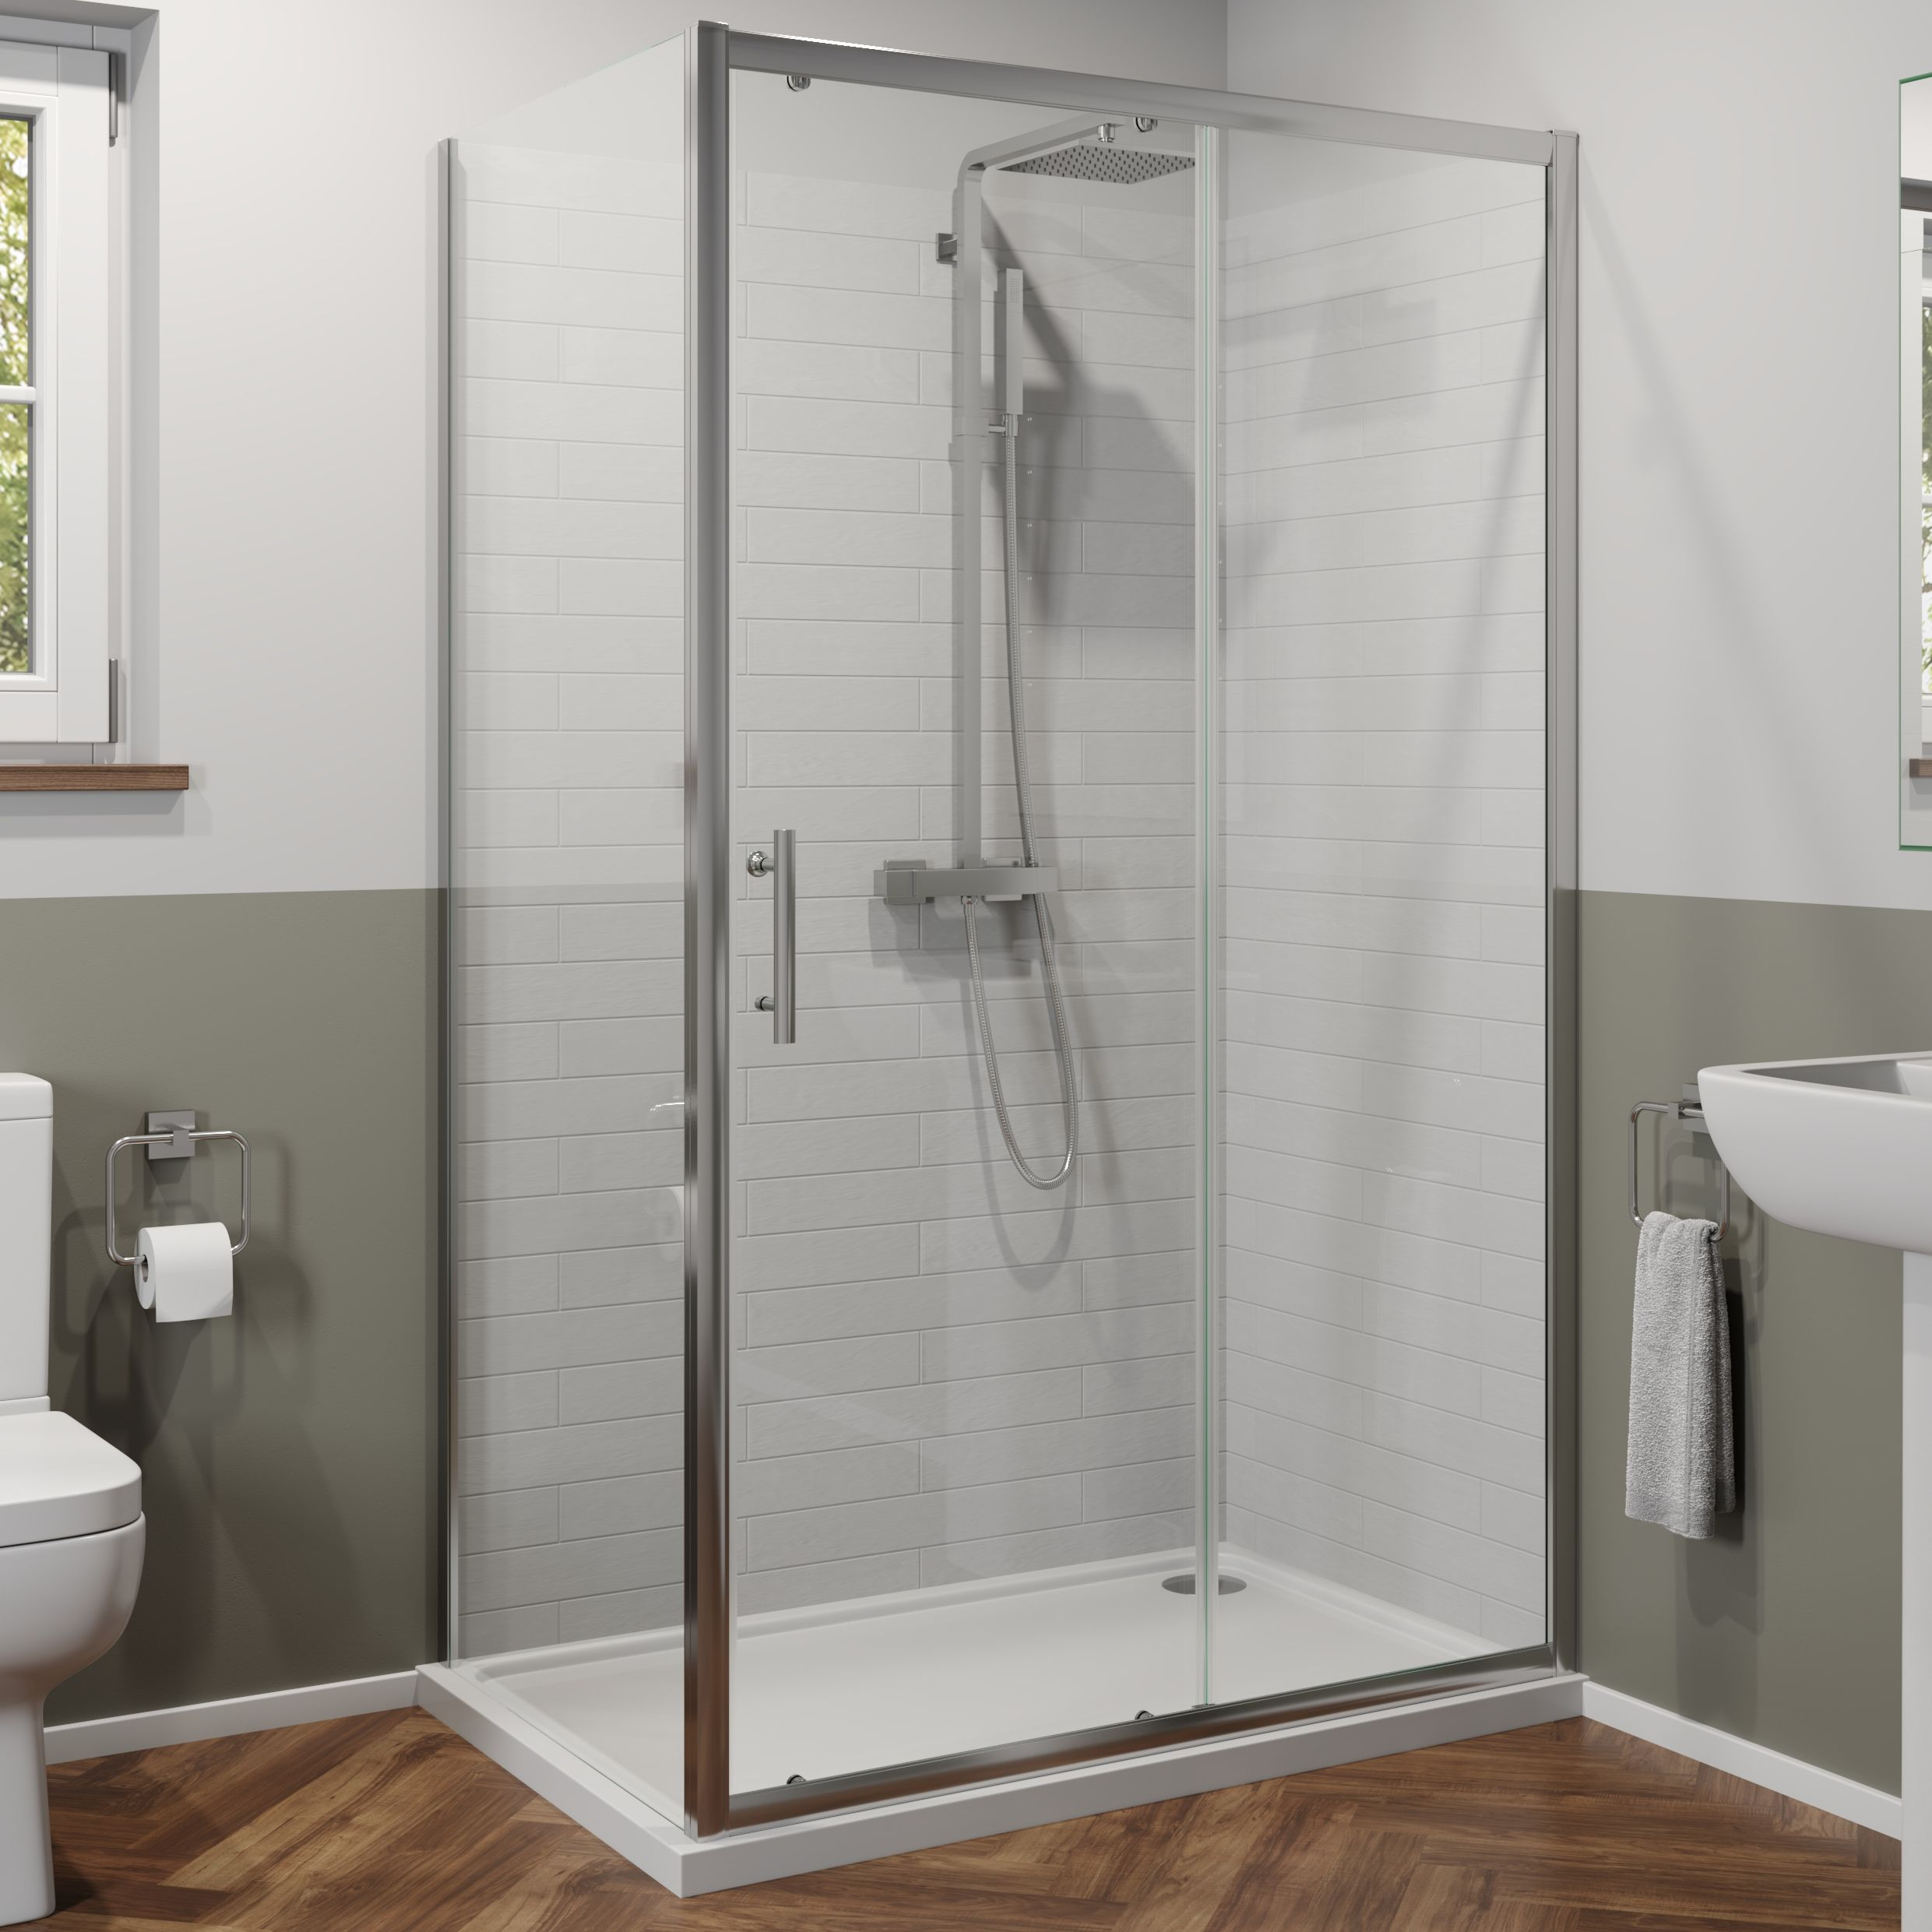 Luxura 1400 X 700mm Sliding Shower Door Side Panel 6mm Glass With 1400 X 700mm Tray Shower Doors Sliding Shower Door Shower Enclosure